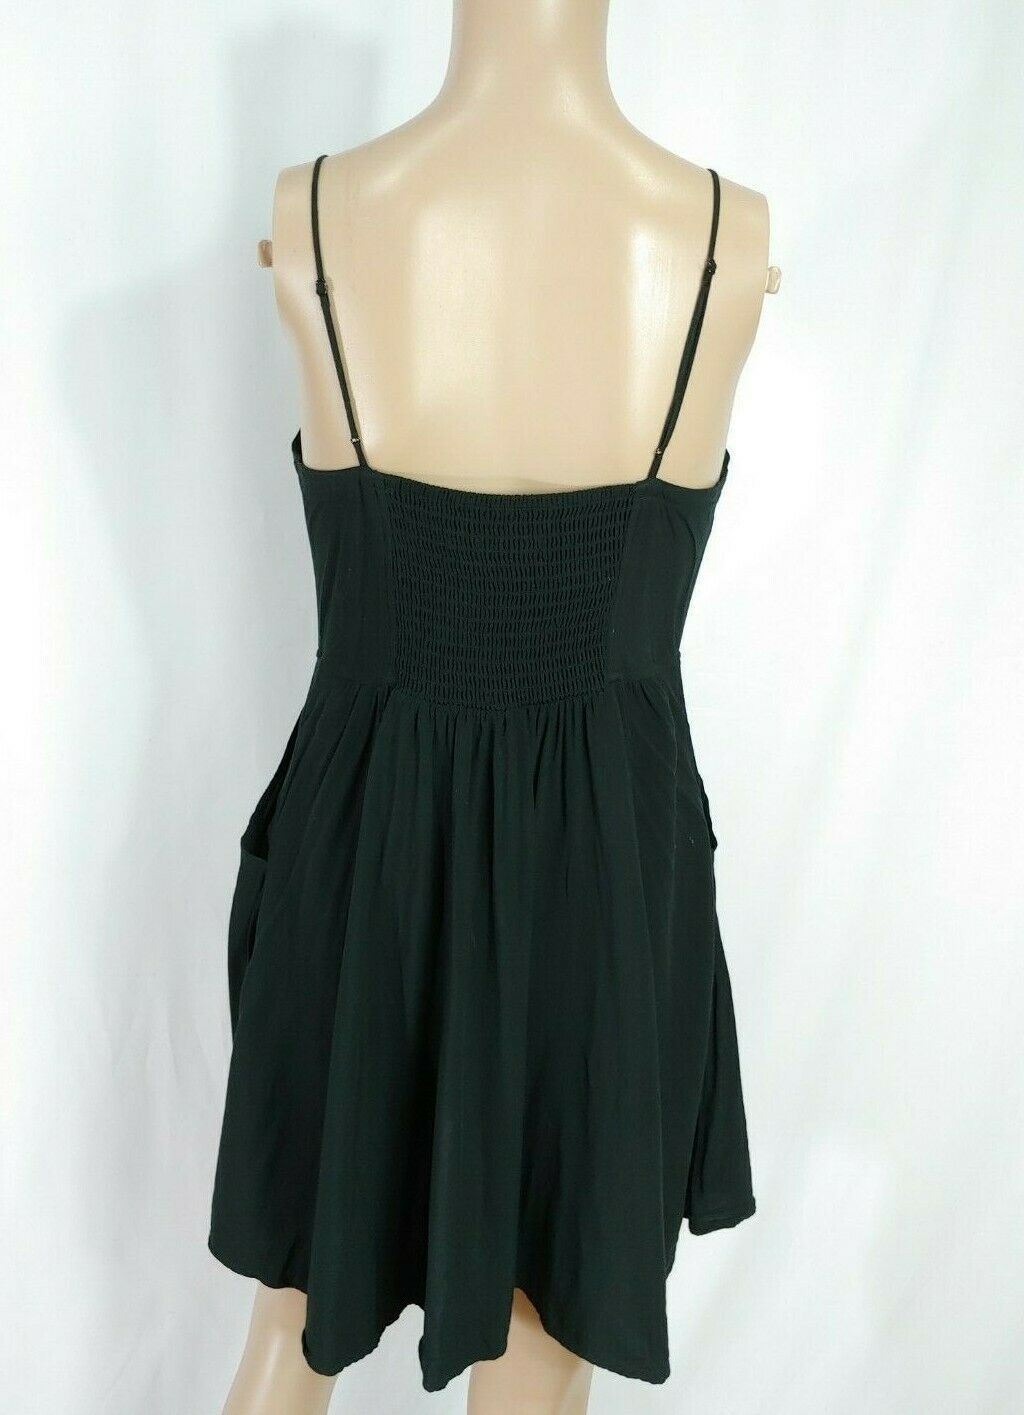 Express Black V-neck Henley Fit & Flare Full Skirt Pocket Skater Slip Sundress S